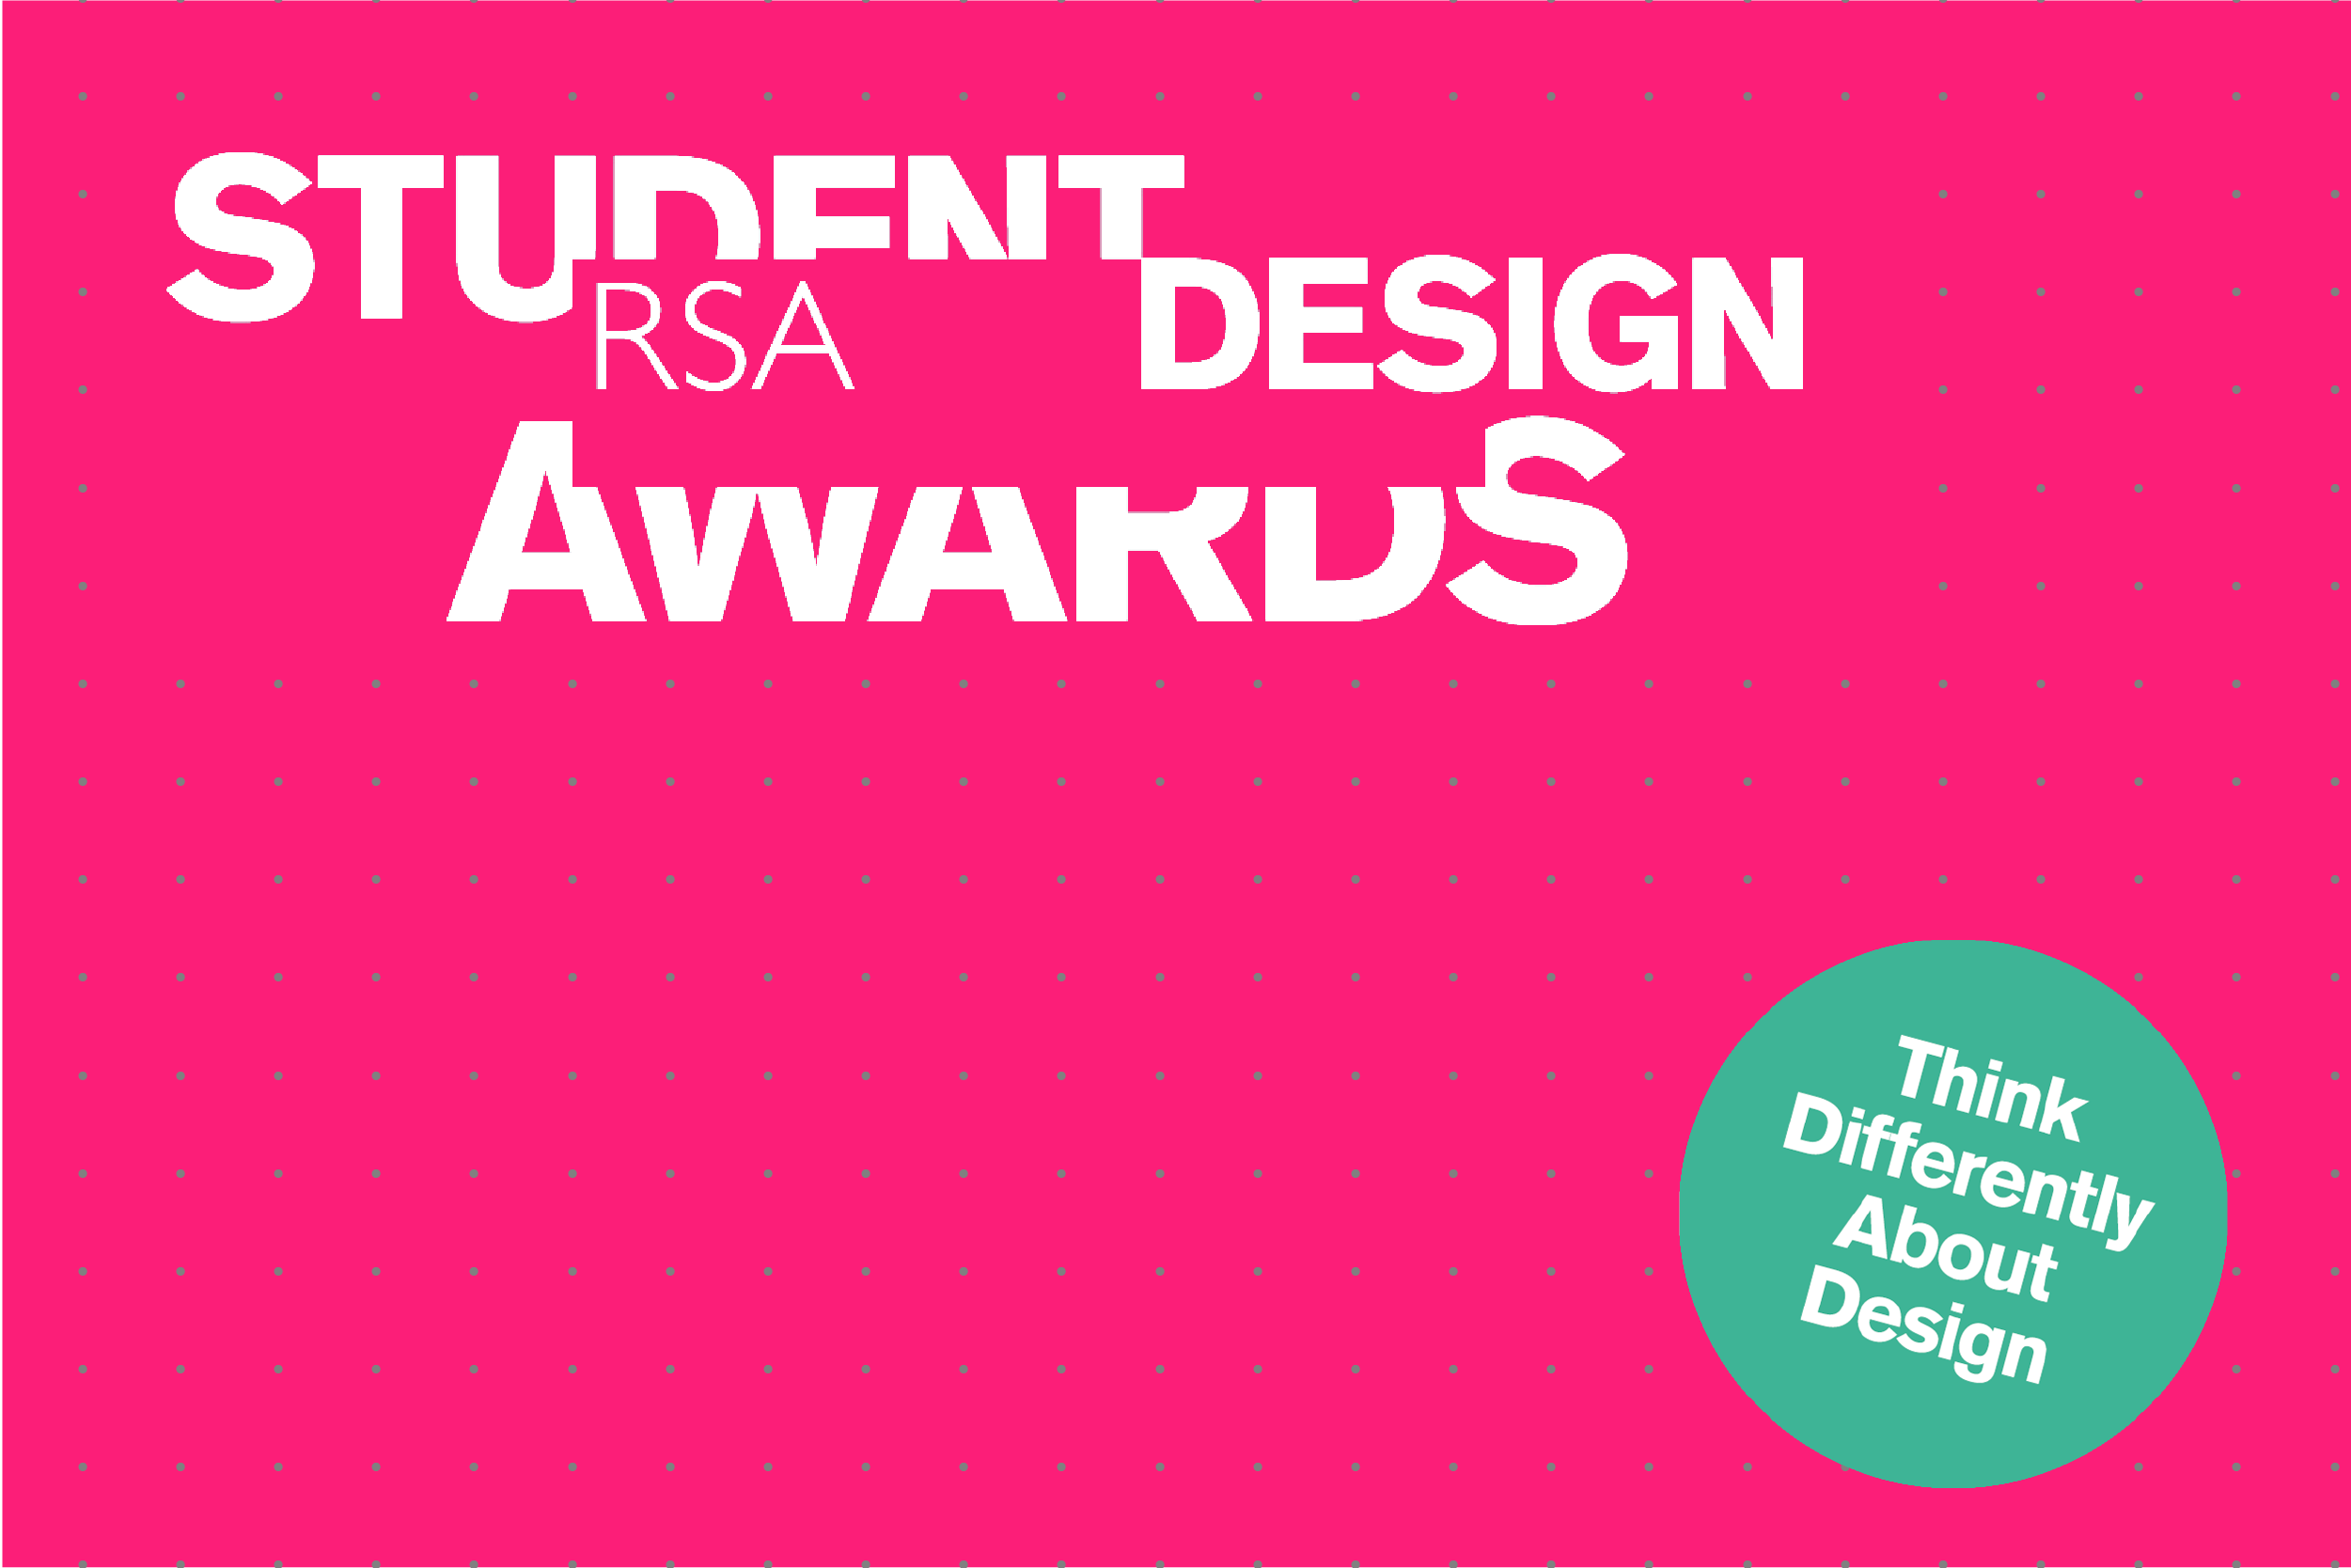 Designing Our Futures: The 2019 RSA Student Design Awards